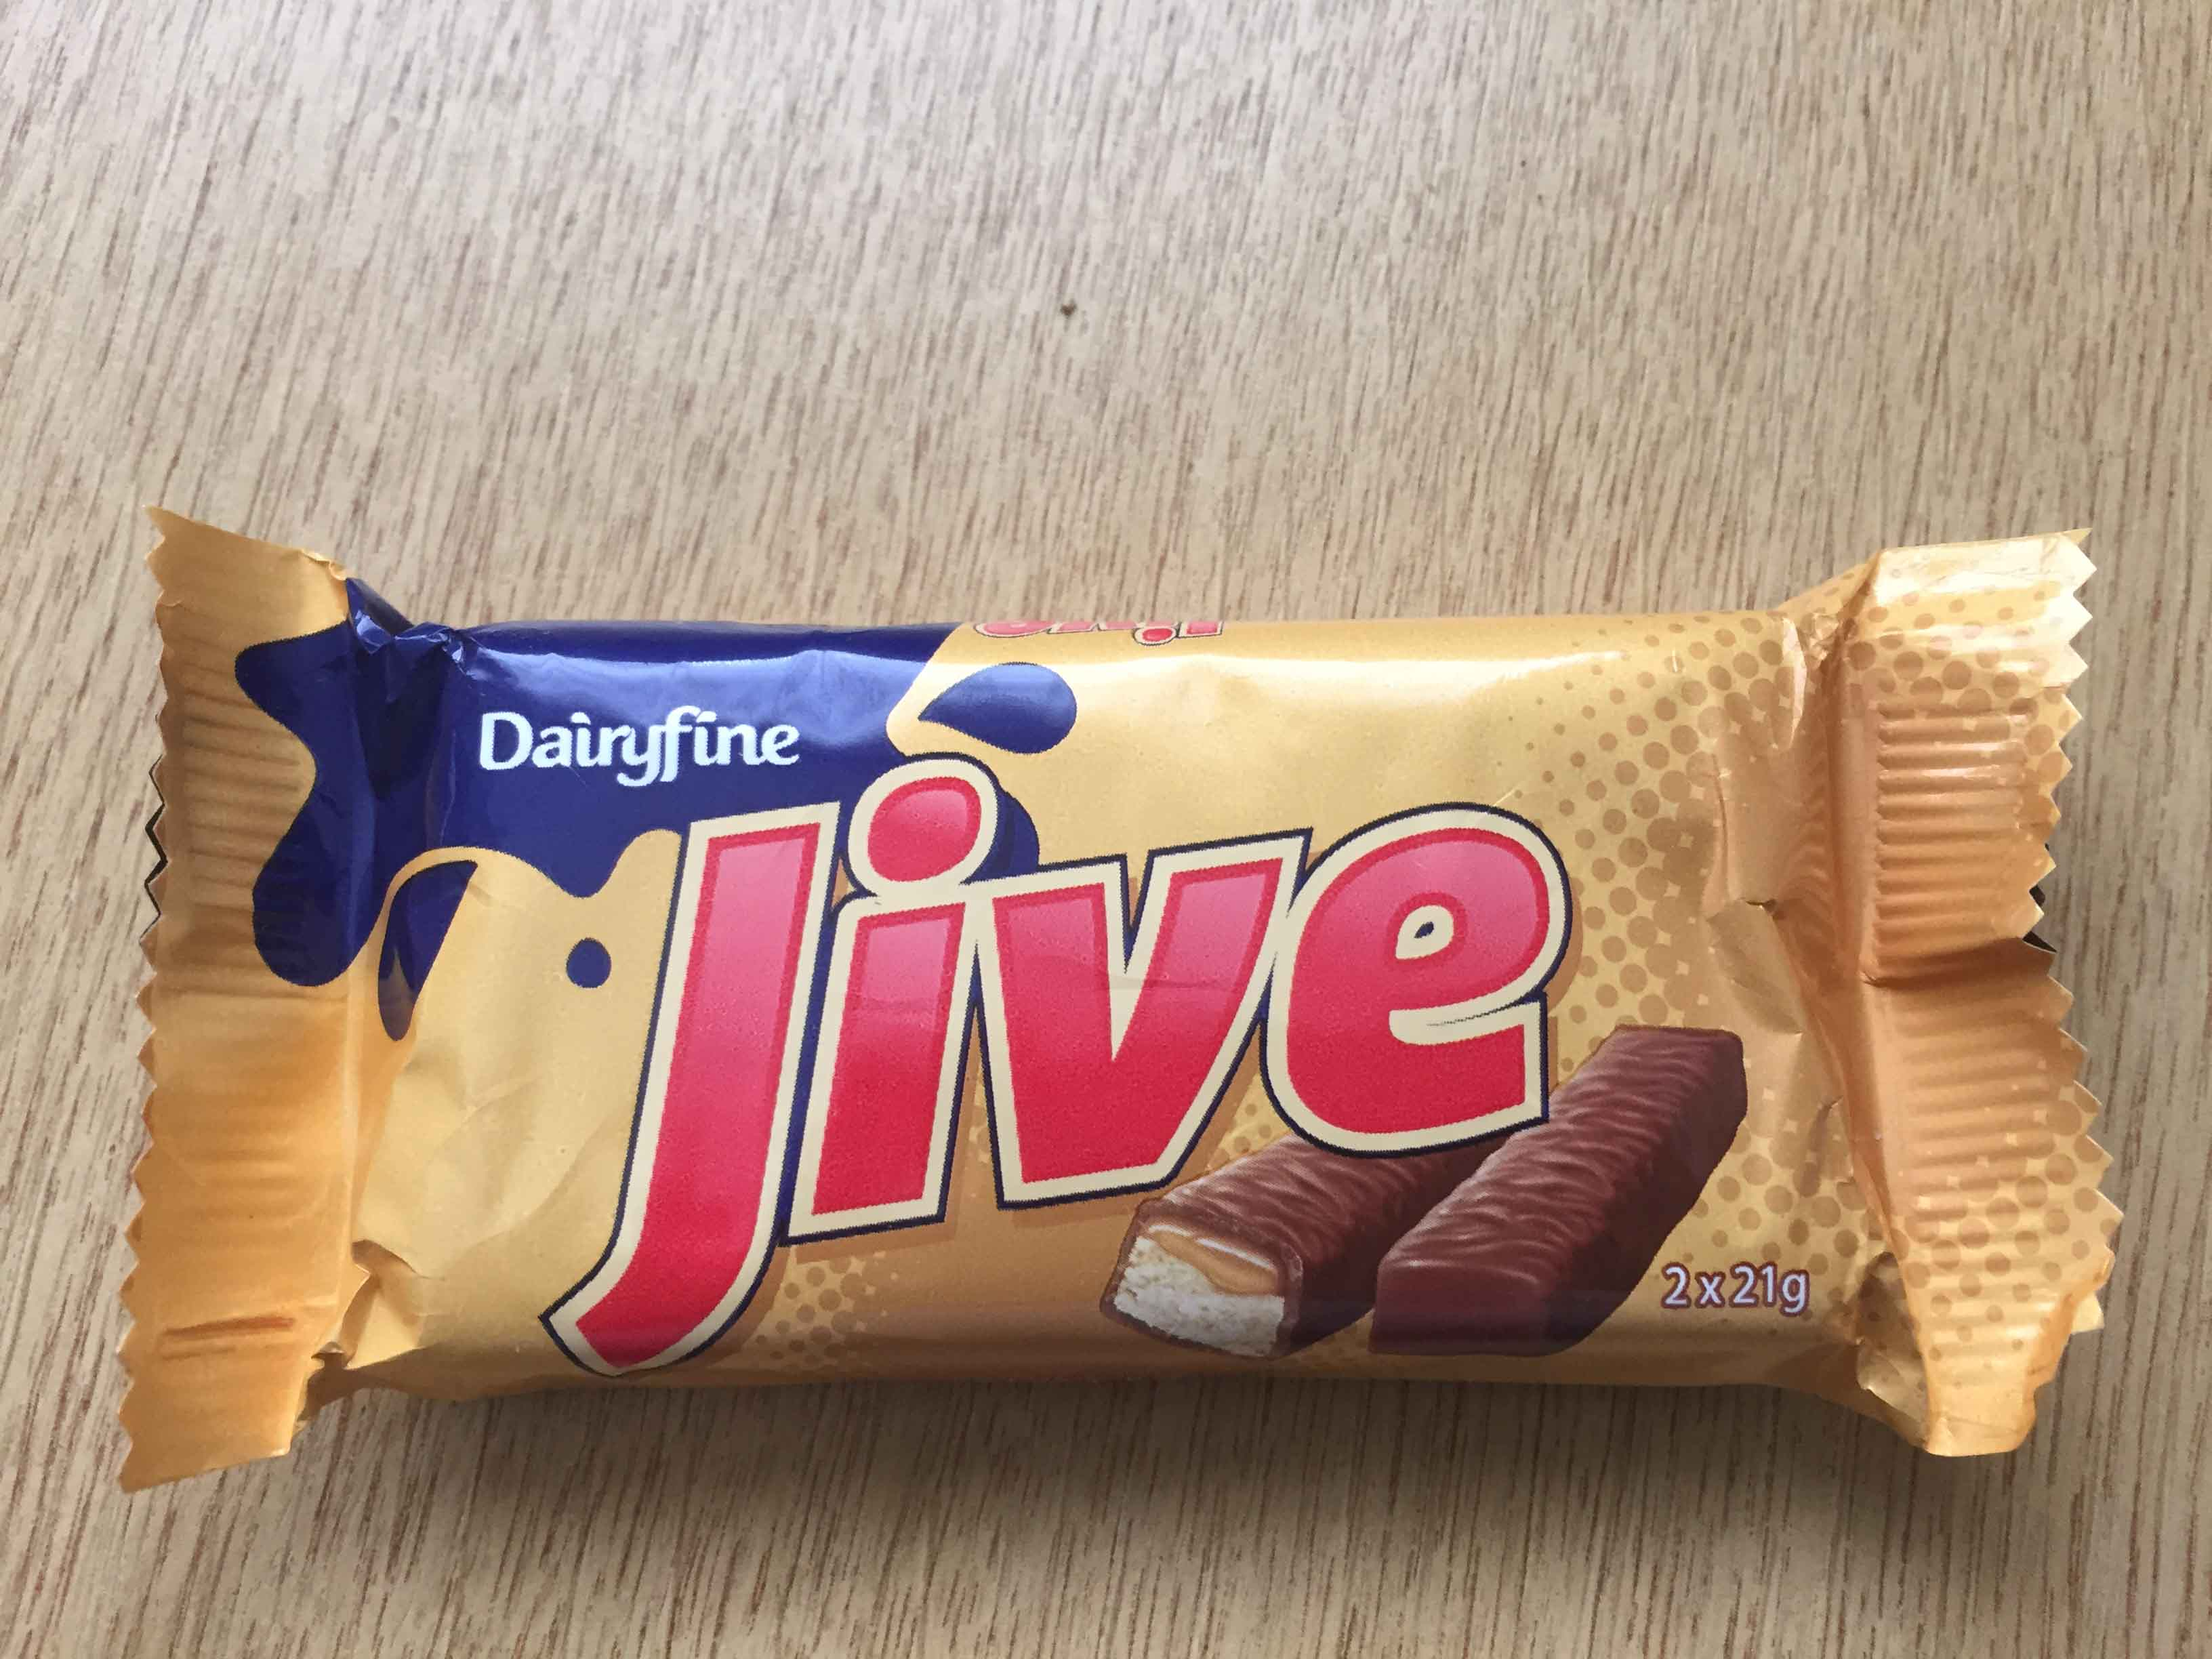 Jive Chocolate Biscuit Bar